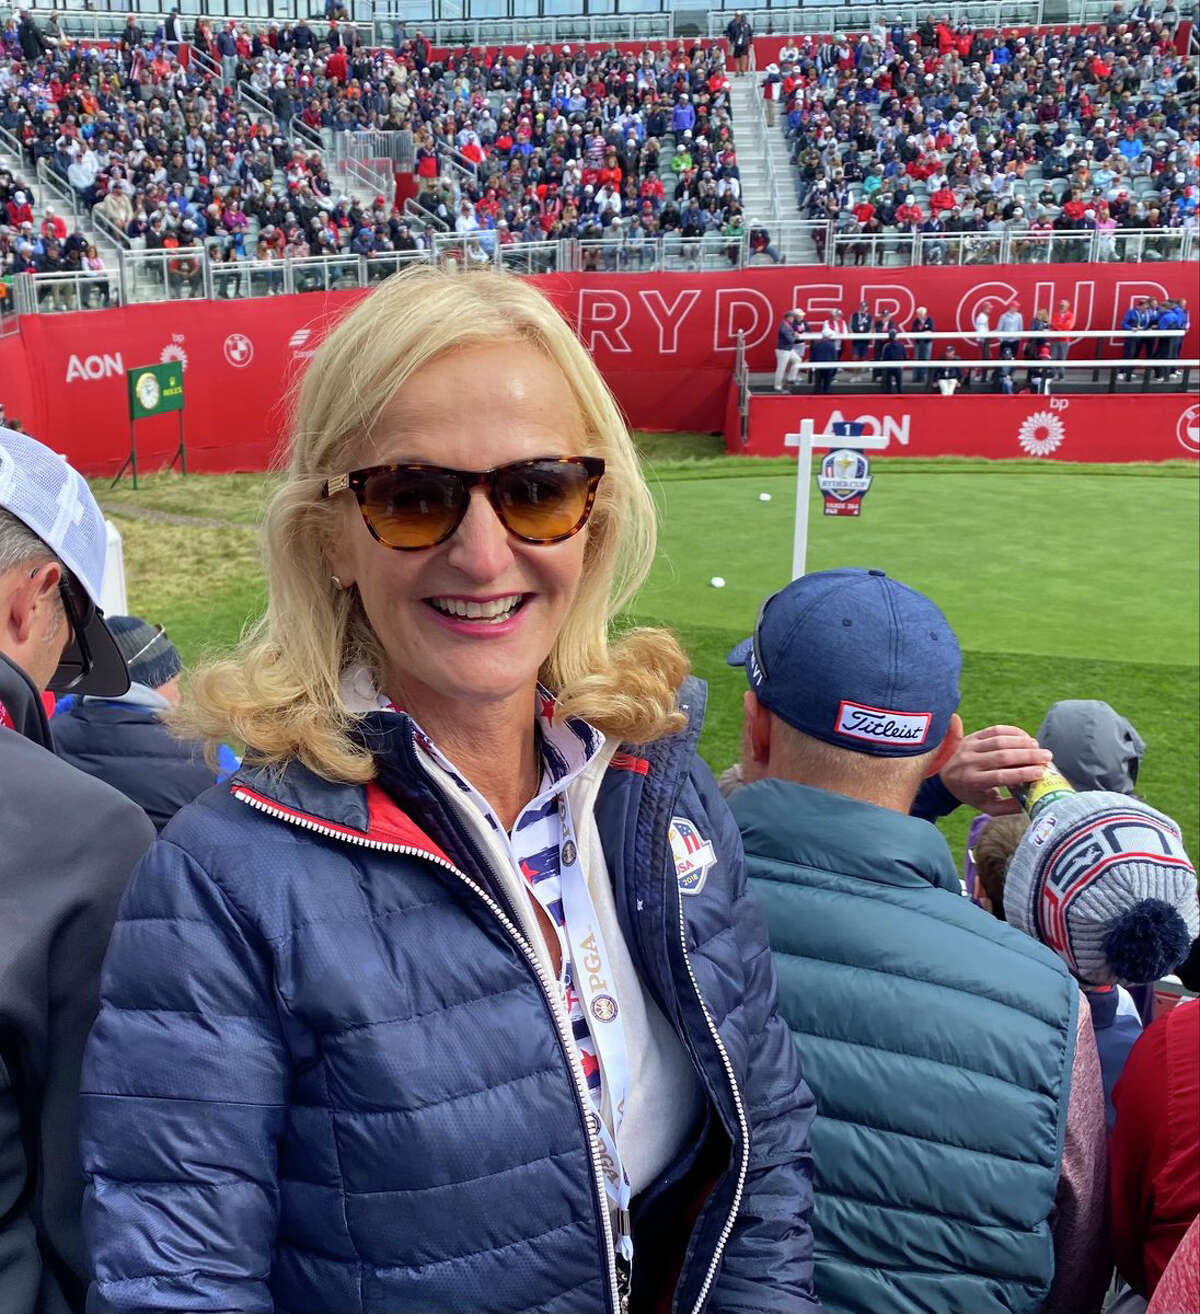 Ann Liguori covers the Ryder Cup at Whistling Straits on Saturday, Sept. 25, 2021. (Provided)